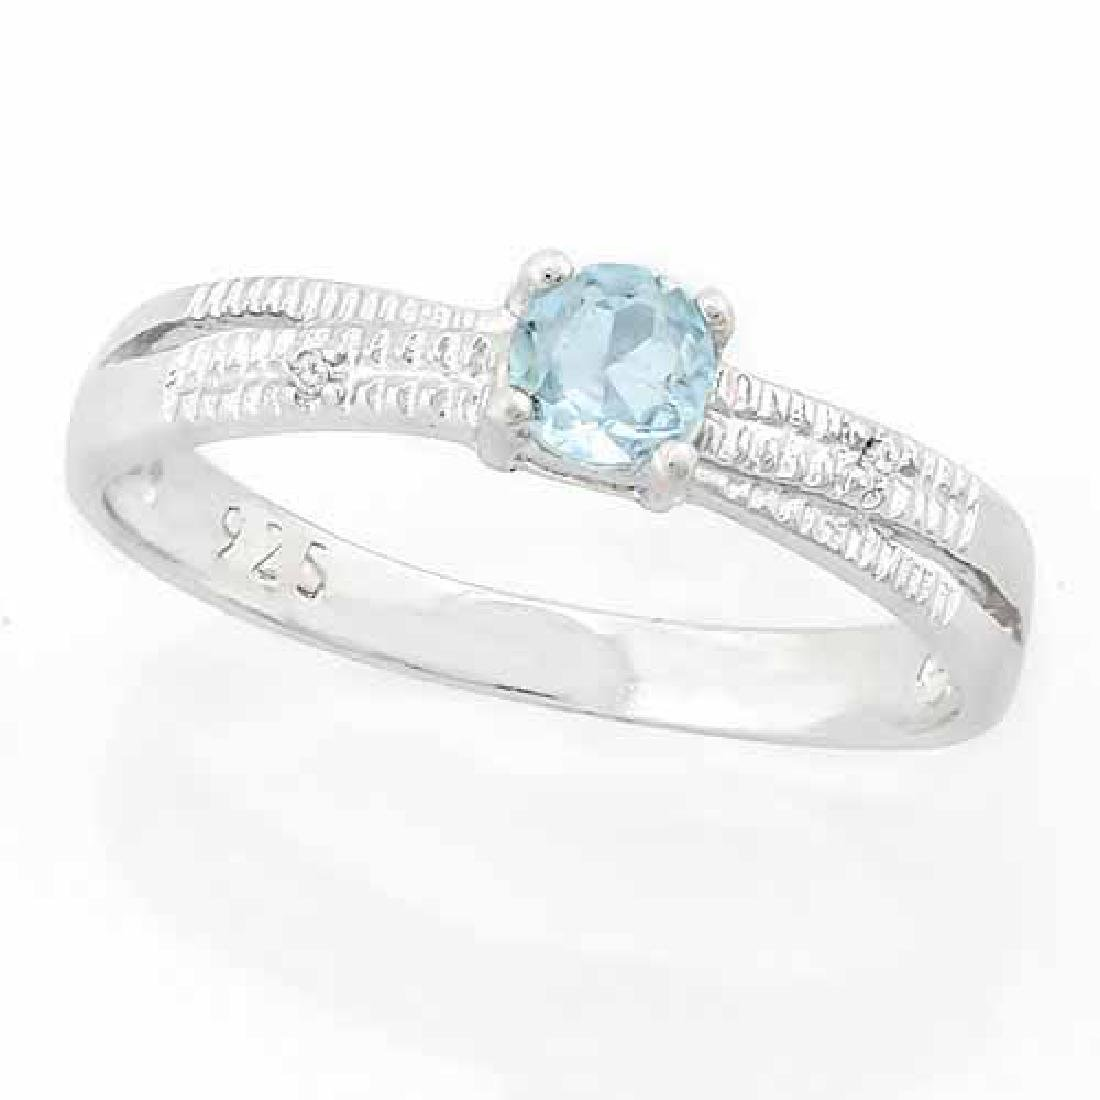 1/4 CARAT BABY SWISS BLUE TOPAZ & DIAMOND 925 STERLING